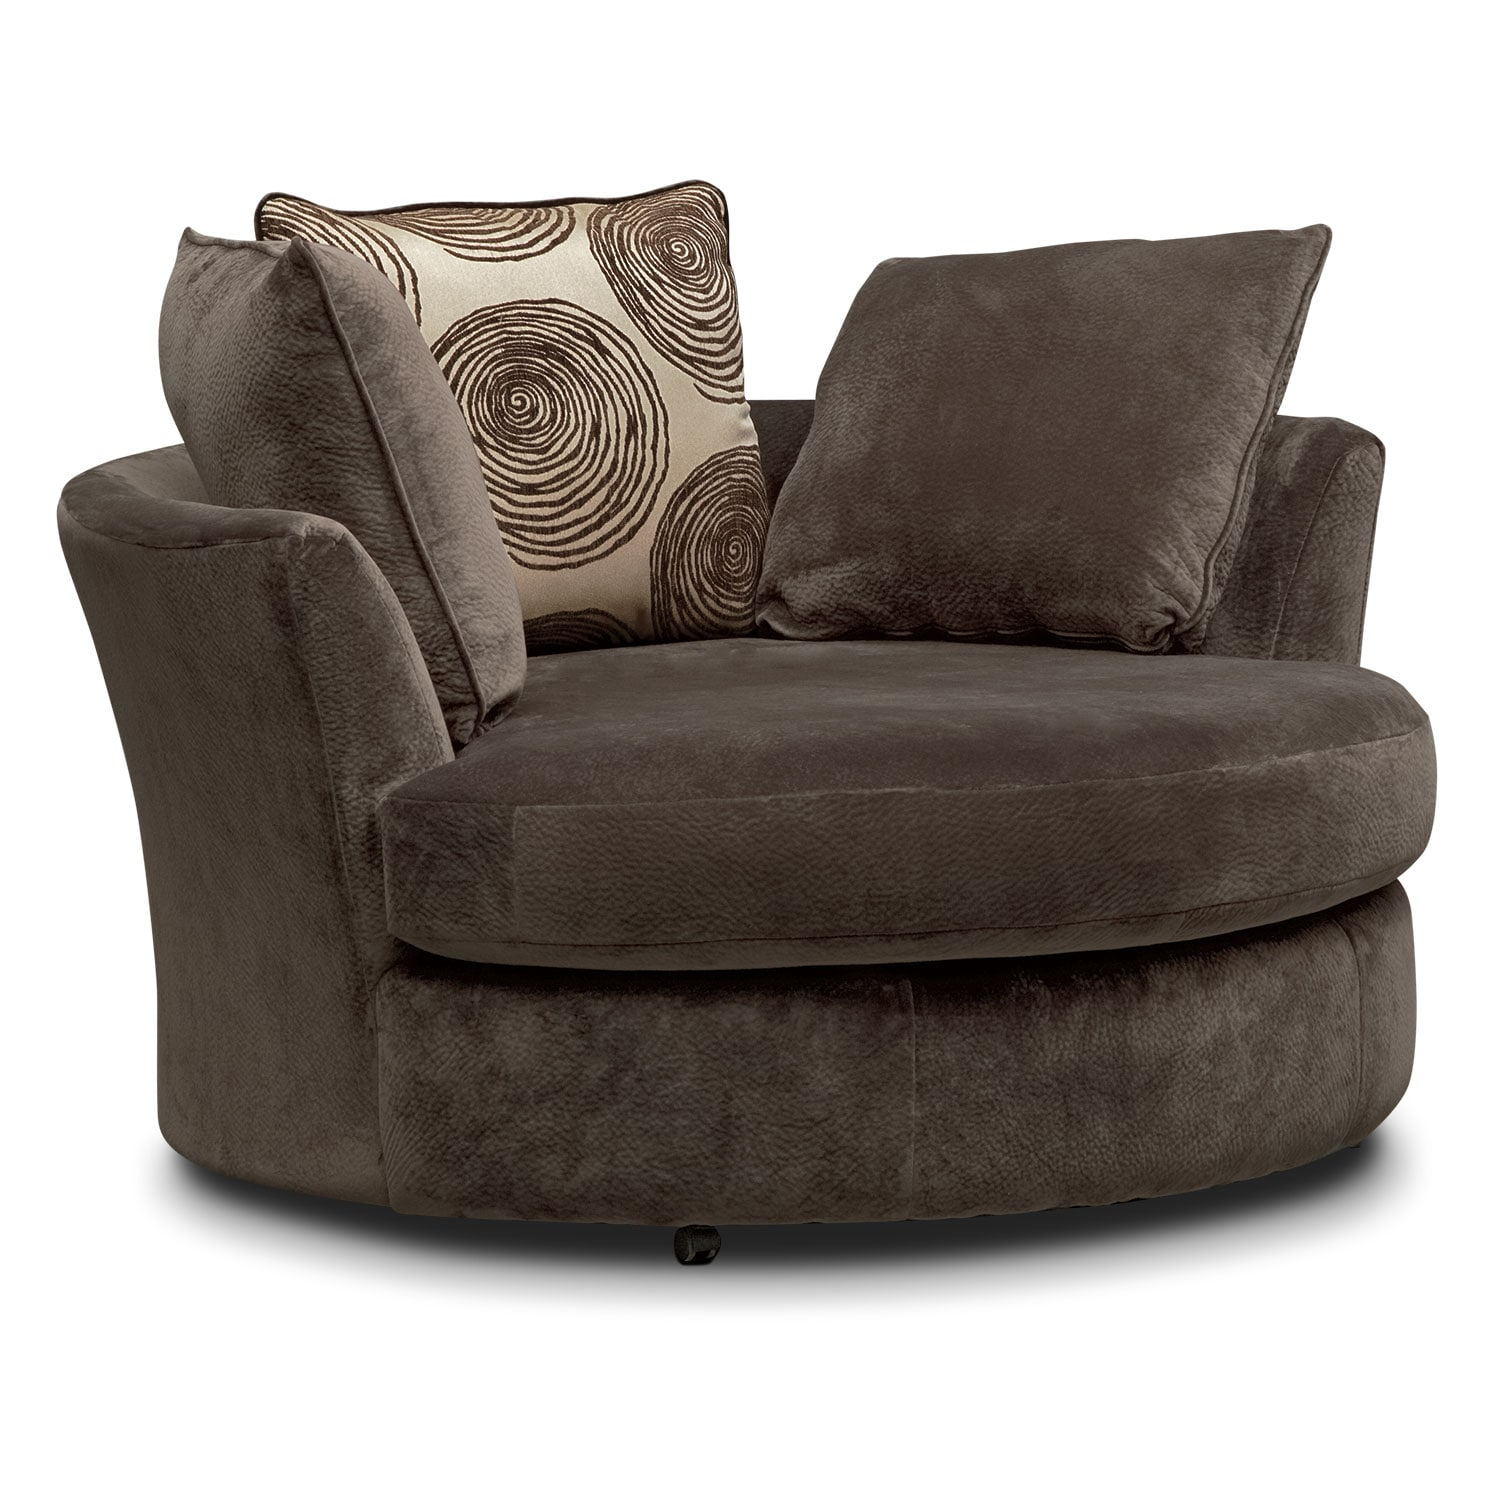 Cordelle Sofa, Loveseat and Swivel Chair Set - Chocolate | Value ...